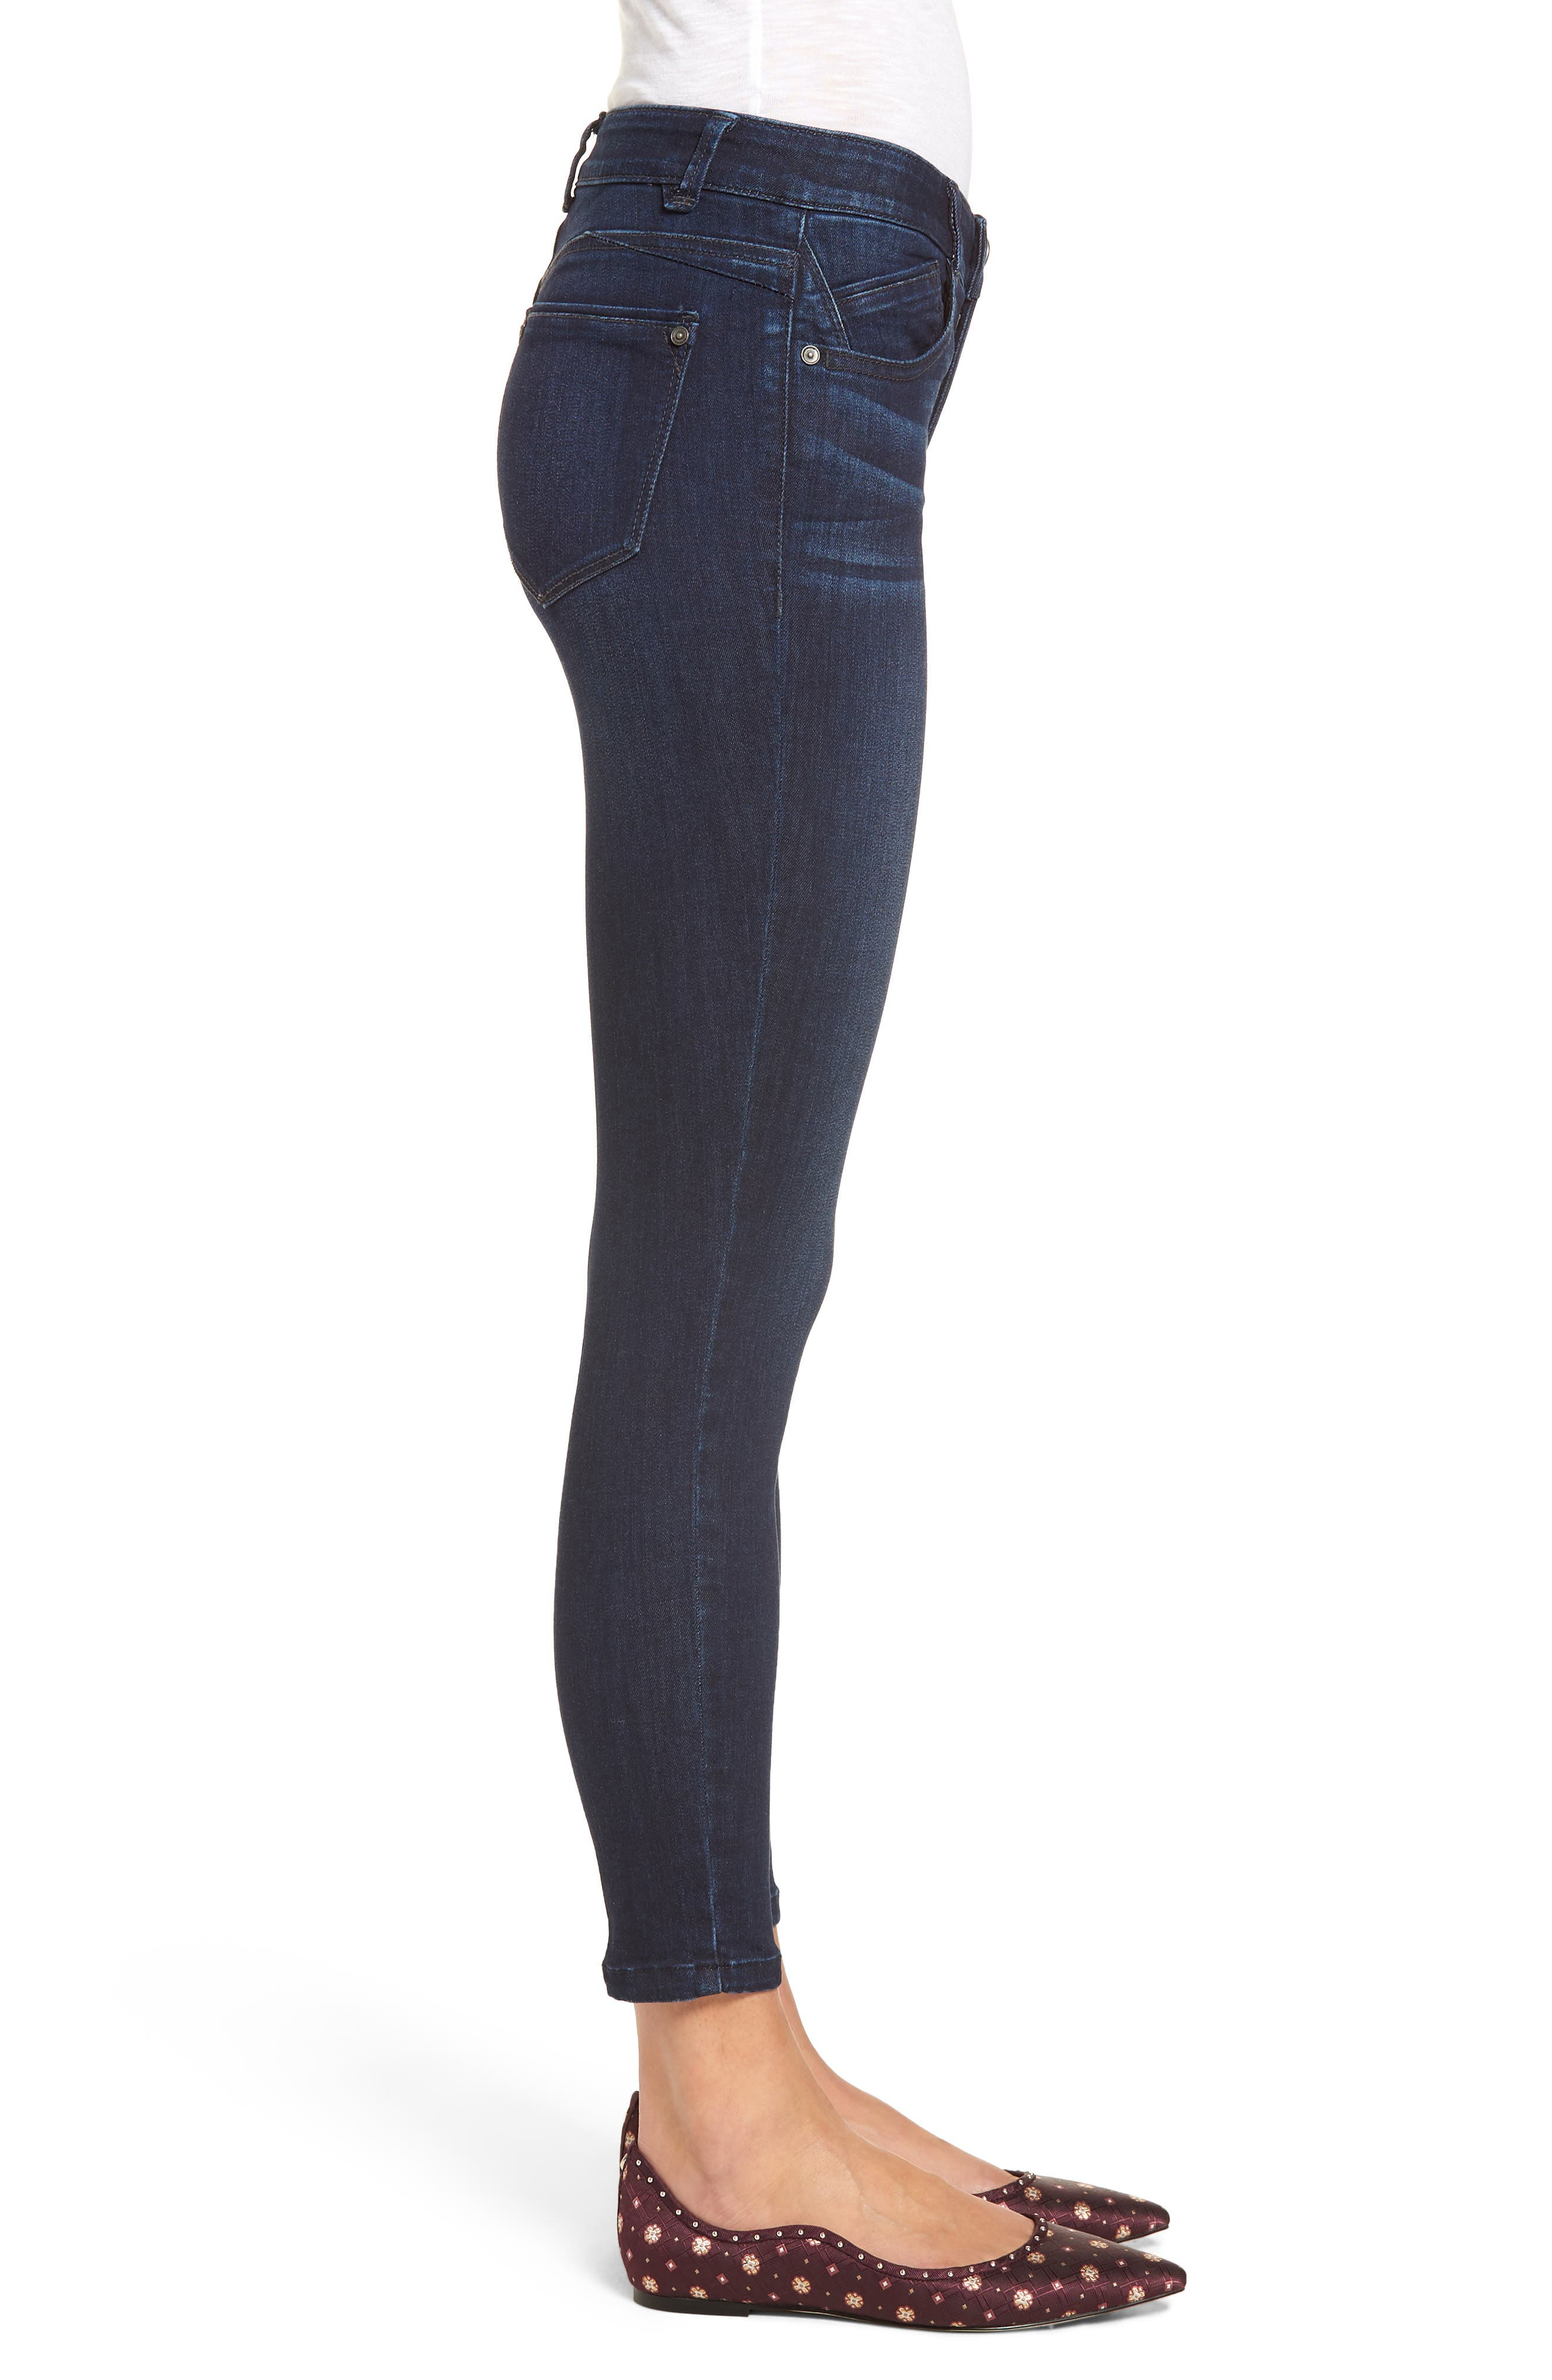 Ab-solution Skinny Jeans,                             Alternate thumbnail 3, color,                             In- Indigo